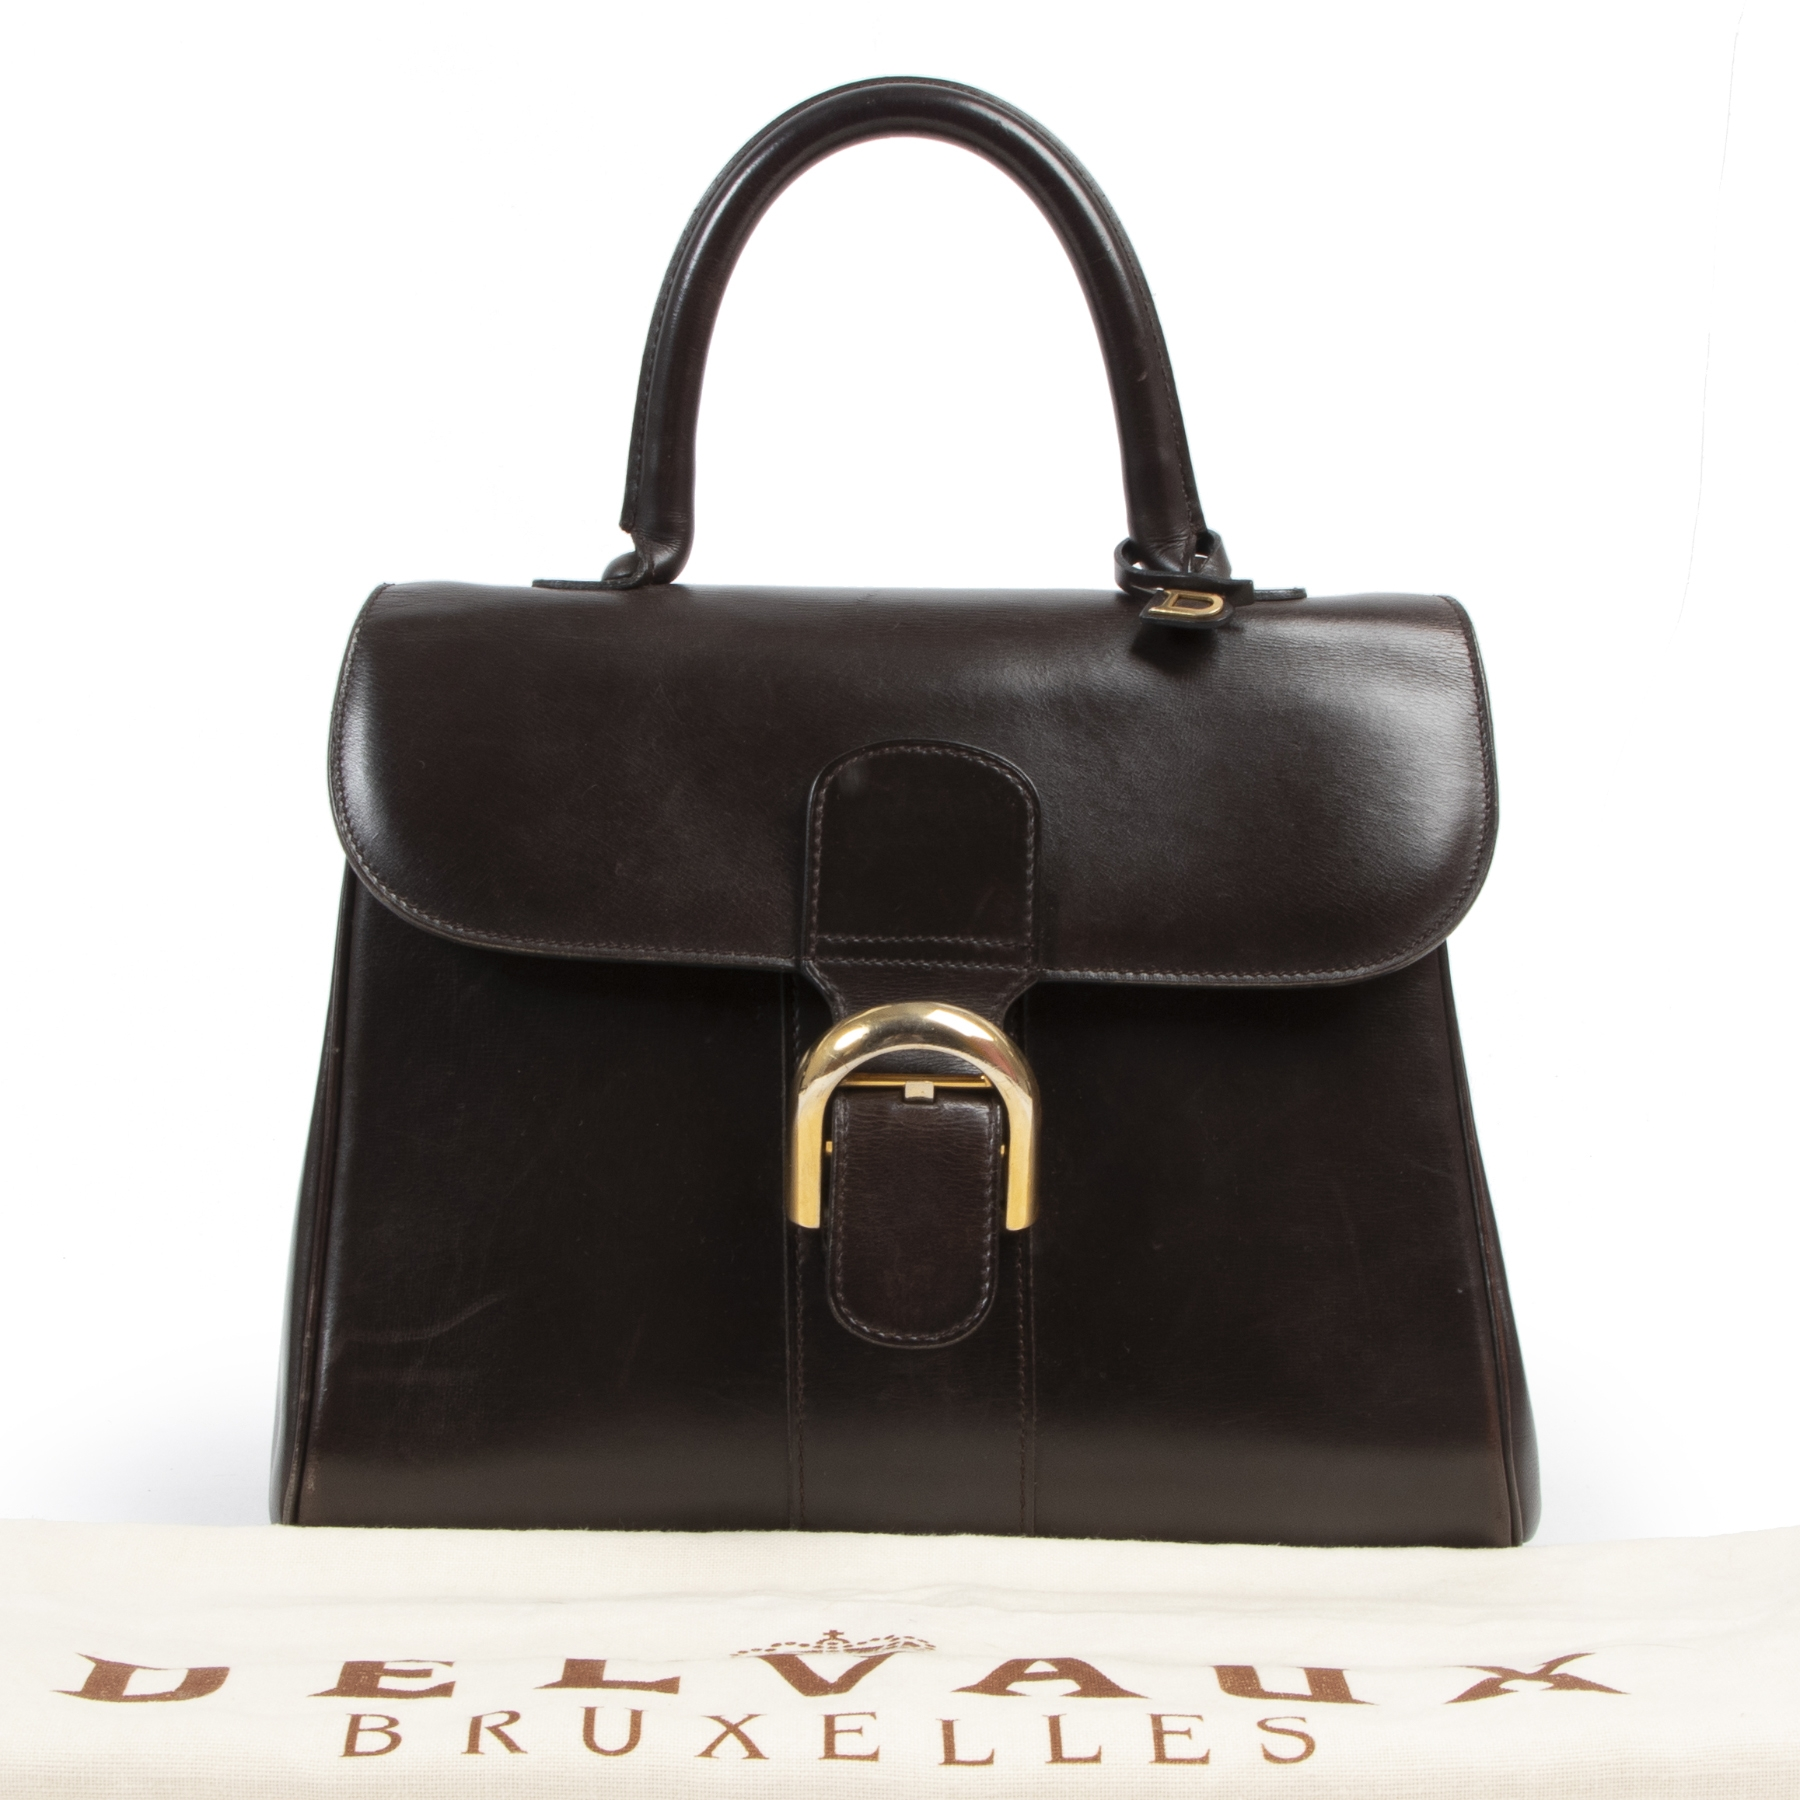 Delvaux Dark Brown MM Brillant Bag. Authentieke tweedehands Delvaux handtassen bij LabelLOV Antwerpen. Authentique seconde-main luxury en ligne webshop LabelLOV. Authentic preloved Delvaux handbags at LabelLOV Antwerp.